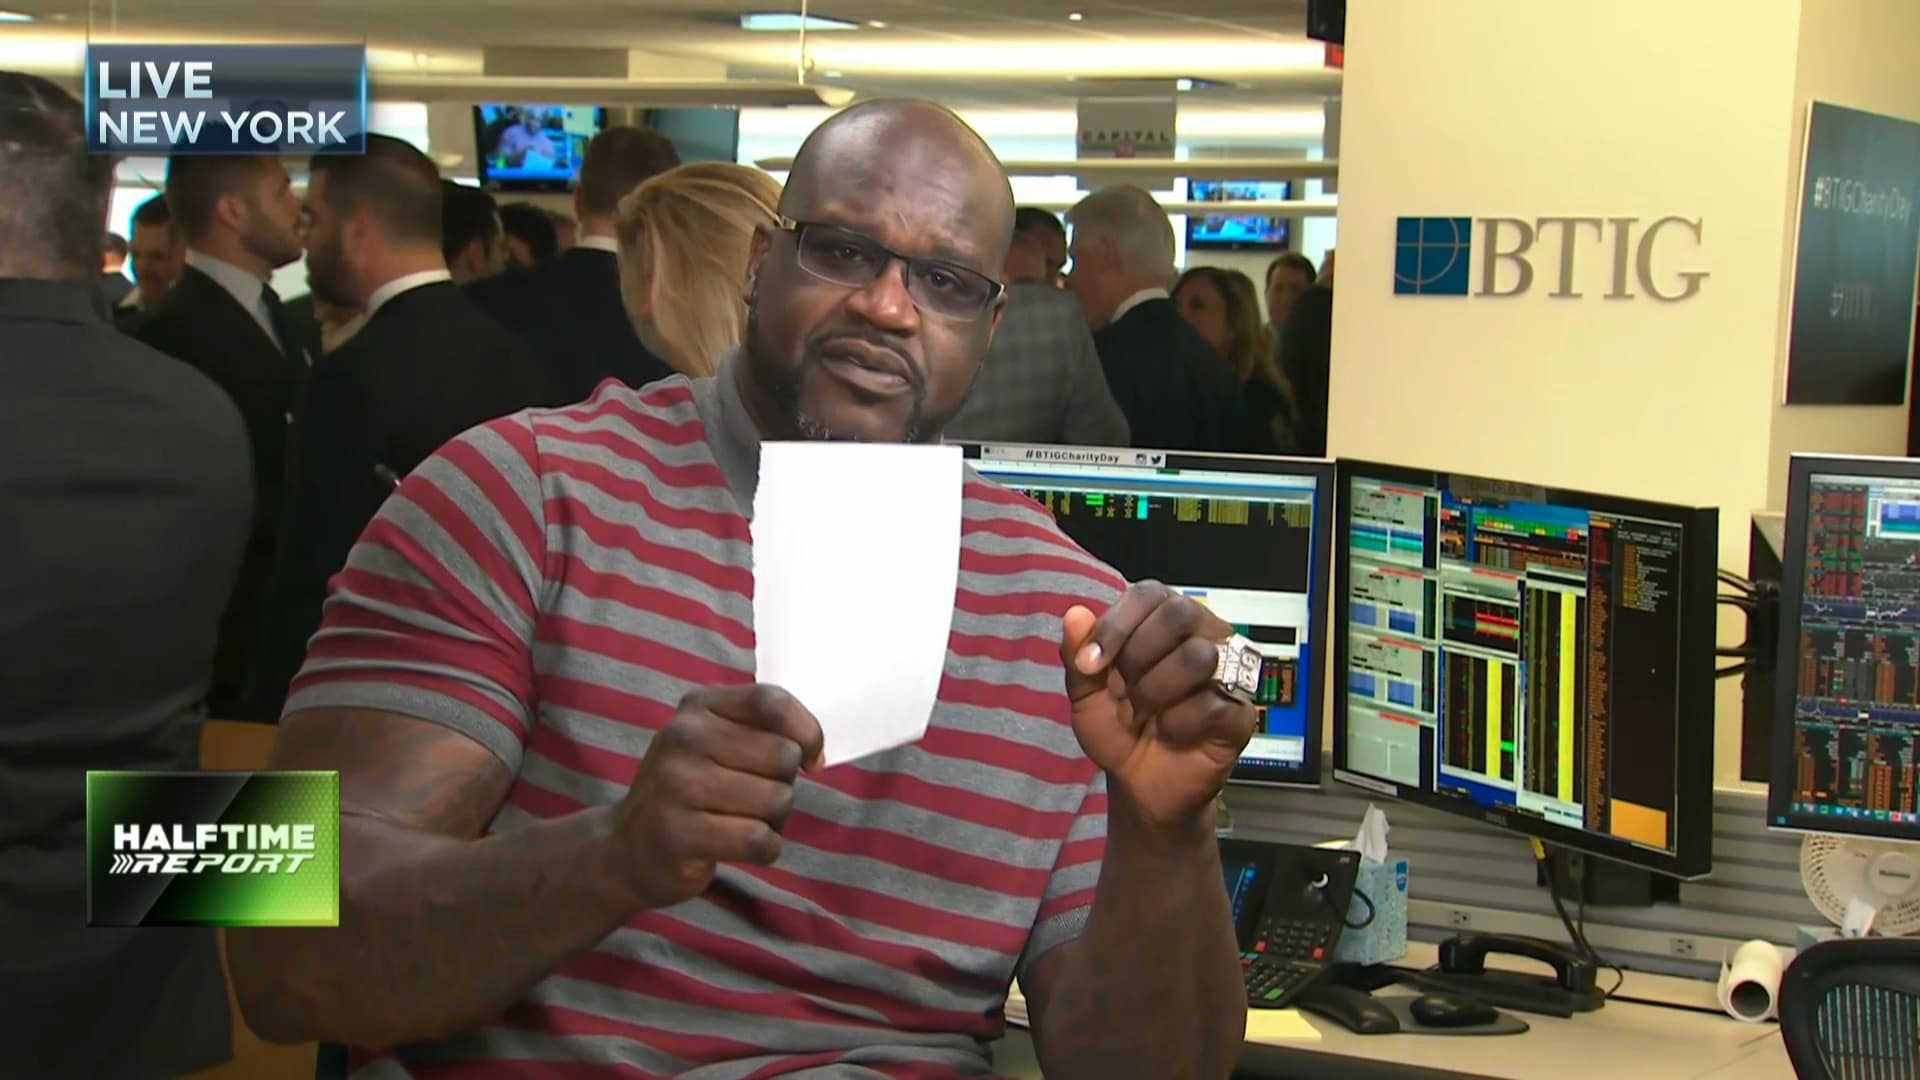 Shaq once blew through $1 million in under an hour, but now he saves 75% of his income